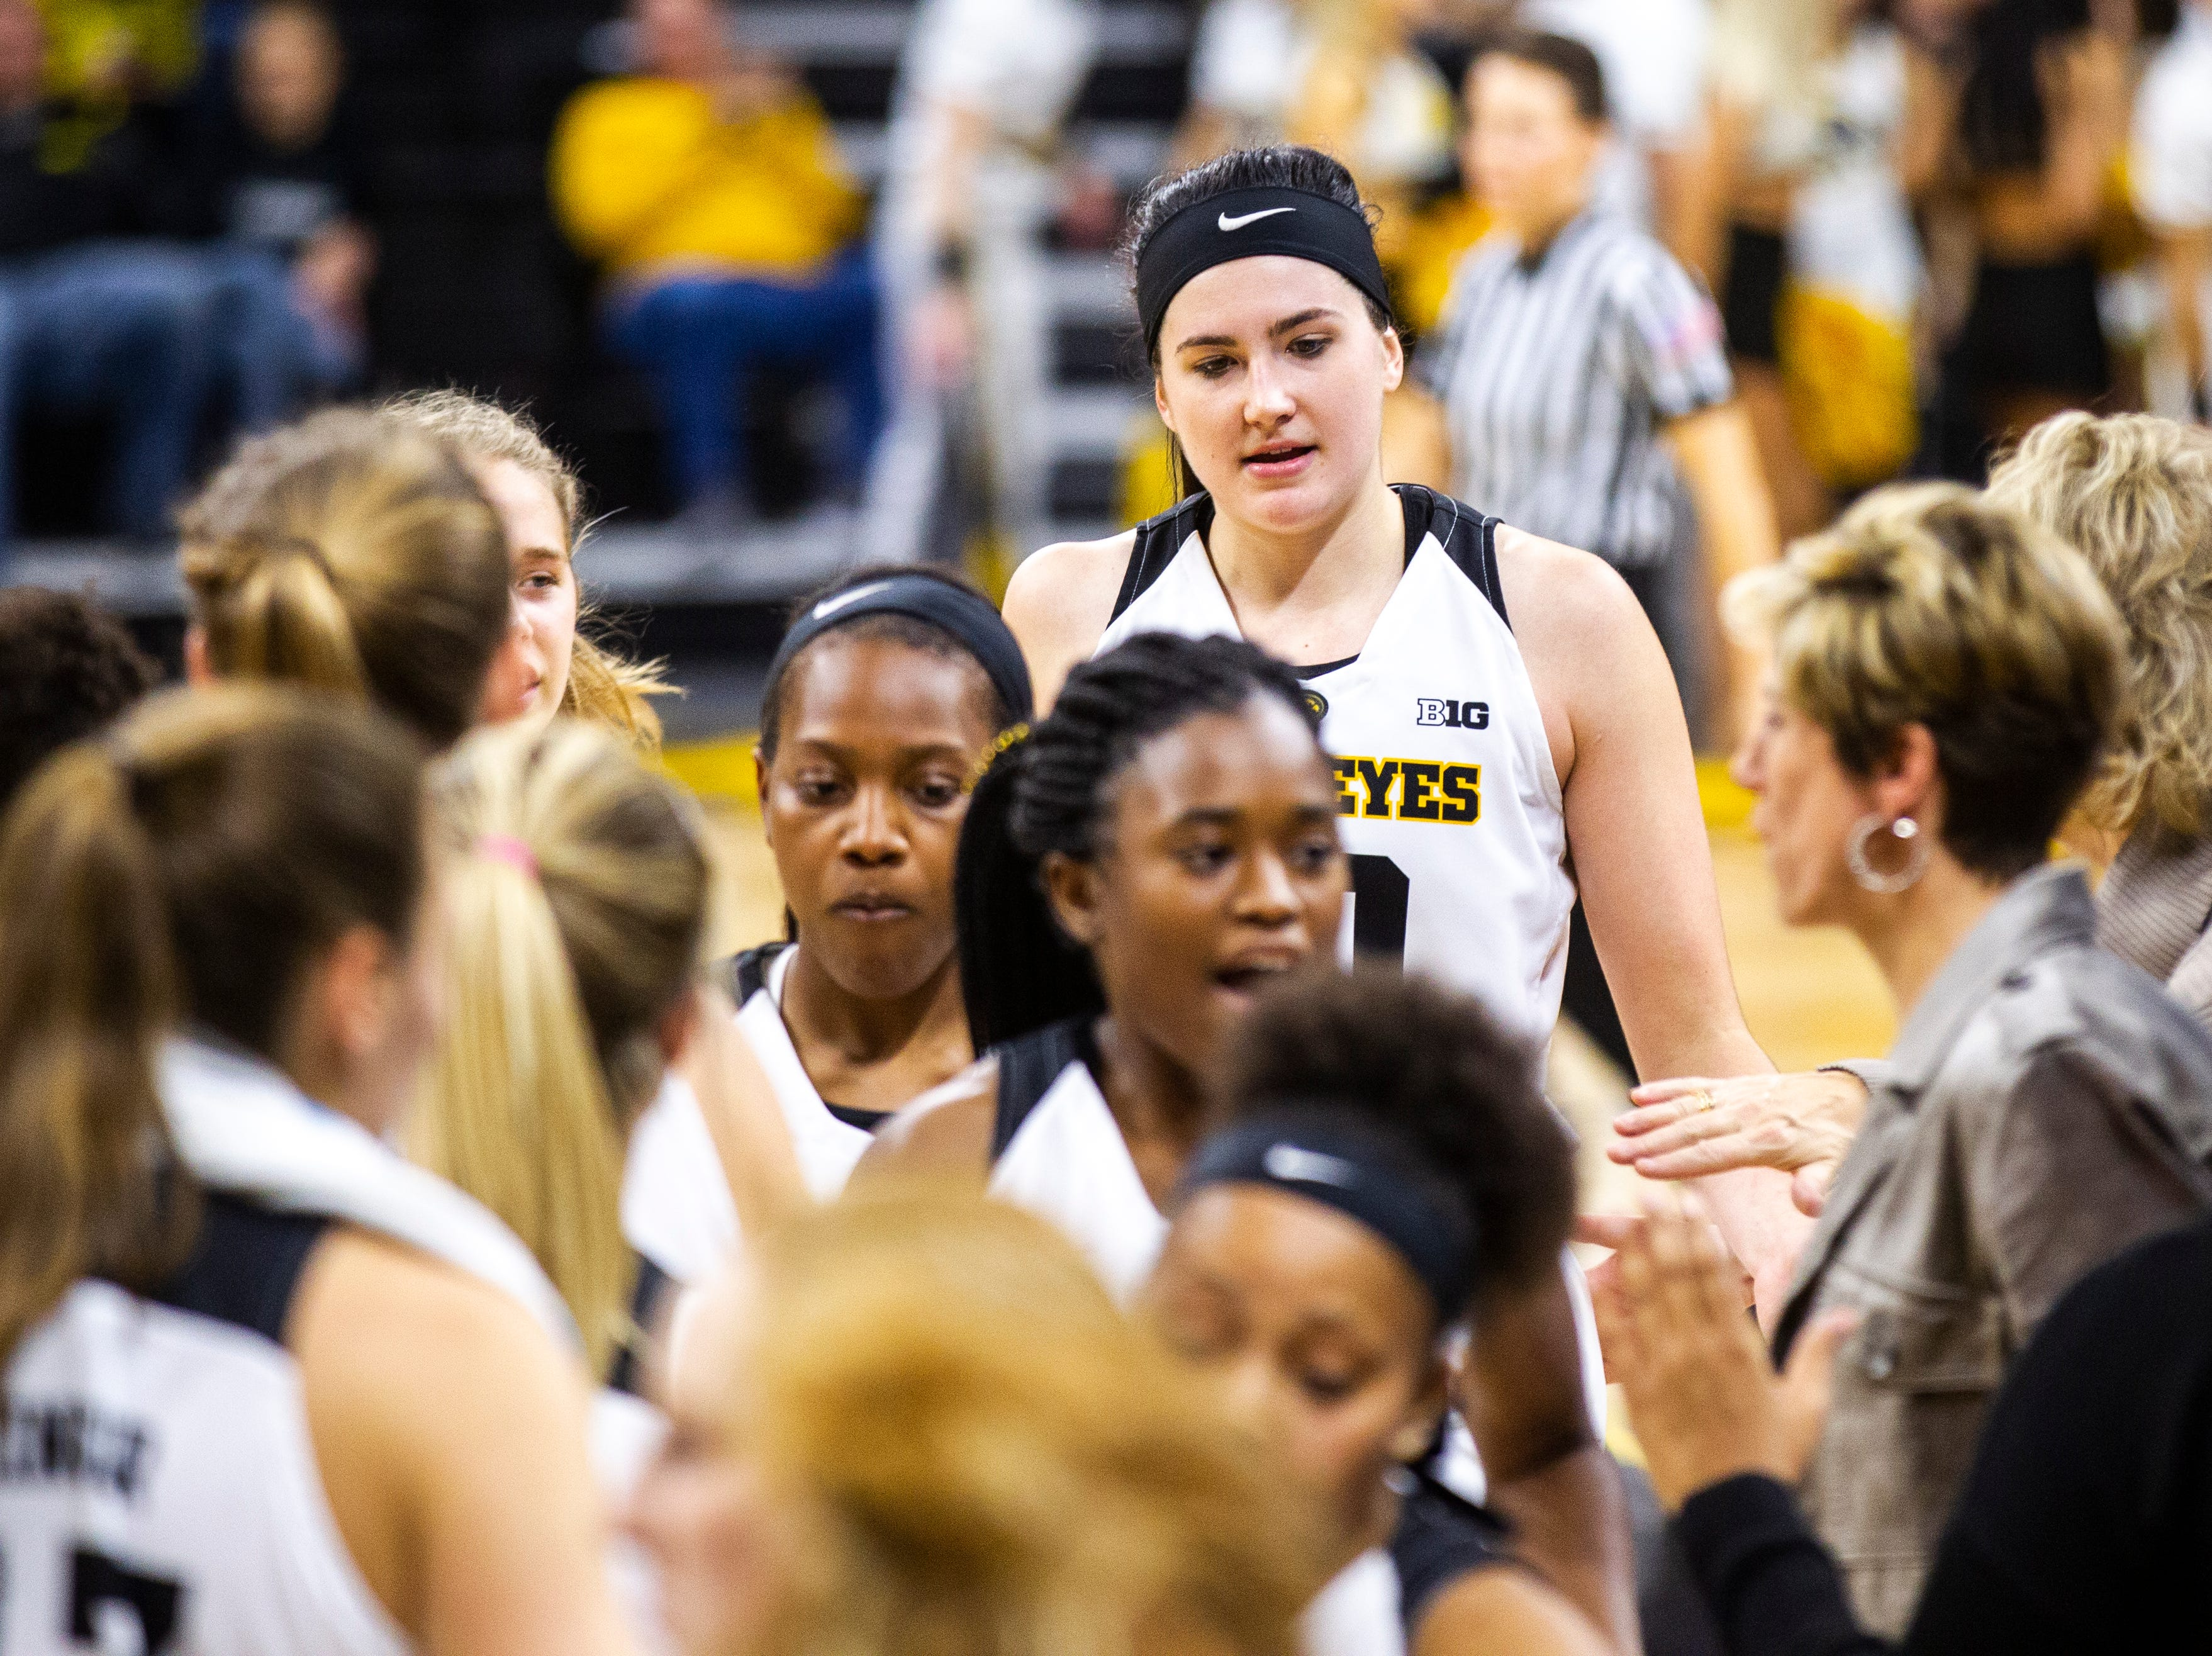 Iowa forward Megan Gustafson (10) huddles up with teammates heading into a timeout during a NCAA women's basketball game on Sunday, Dec. 16, 2018, at Carver-Hawkeye Arena in Iowa City.